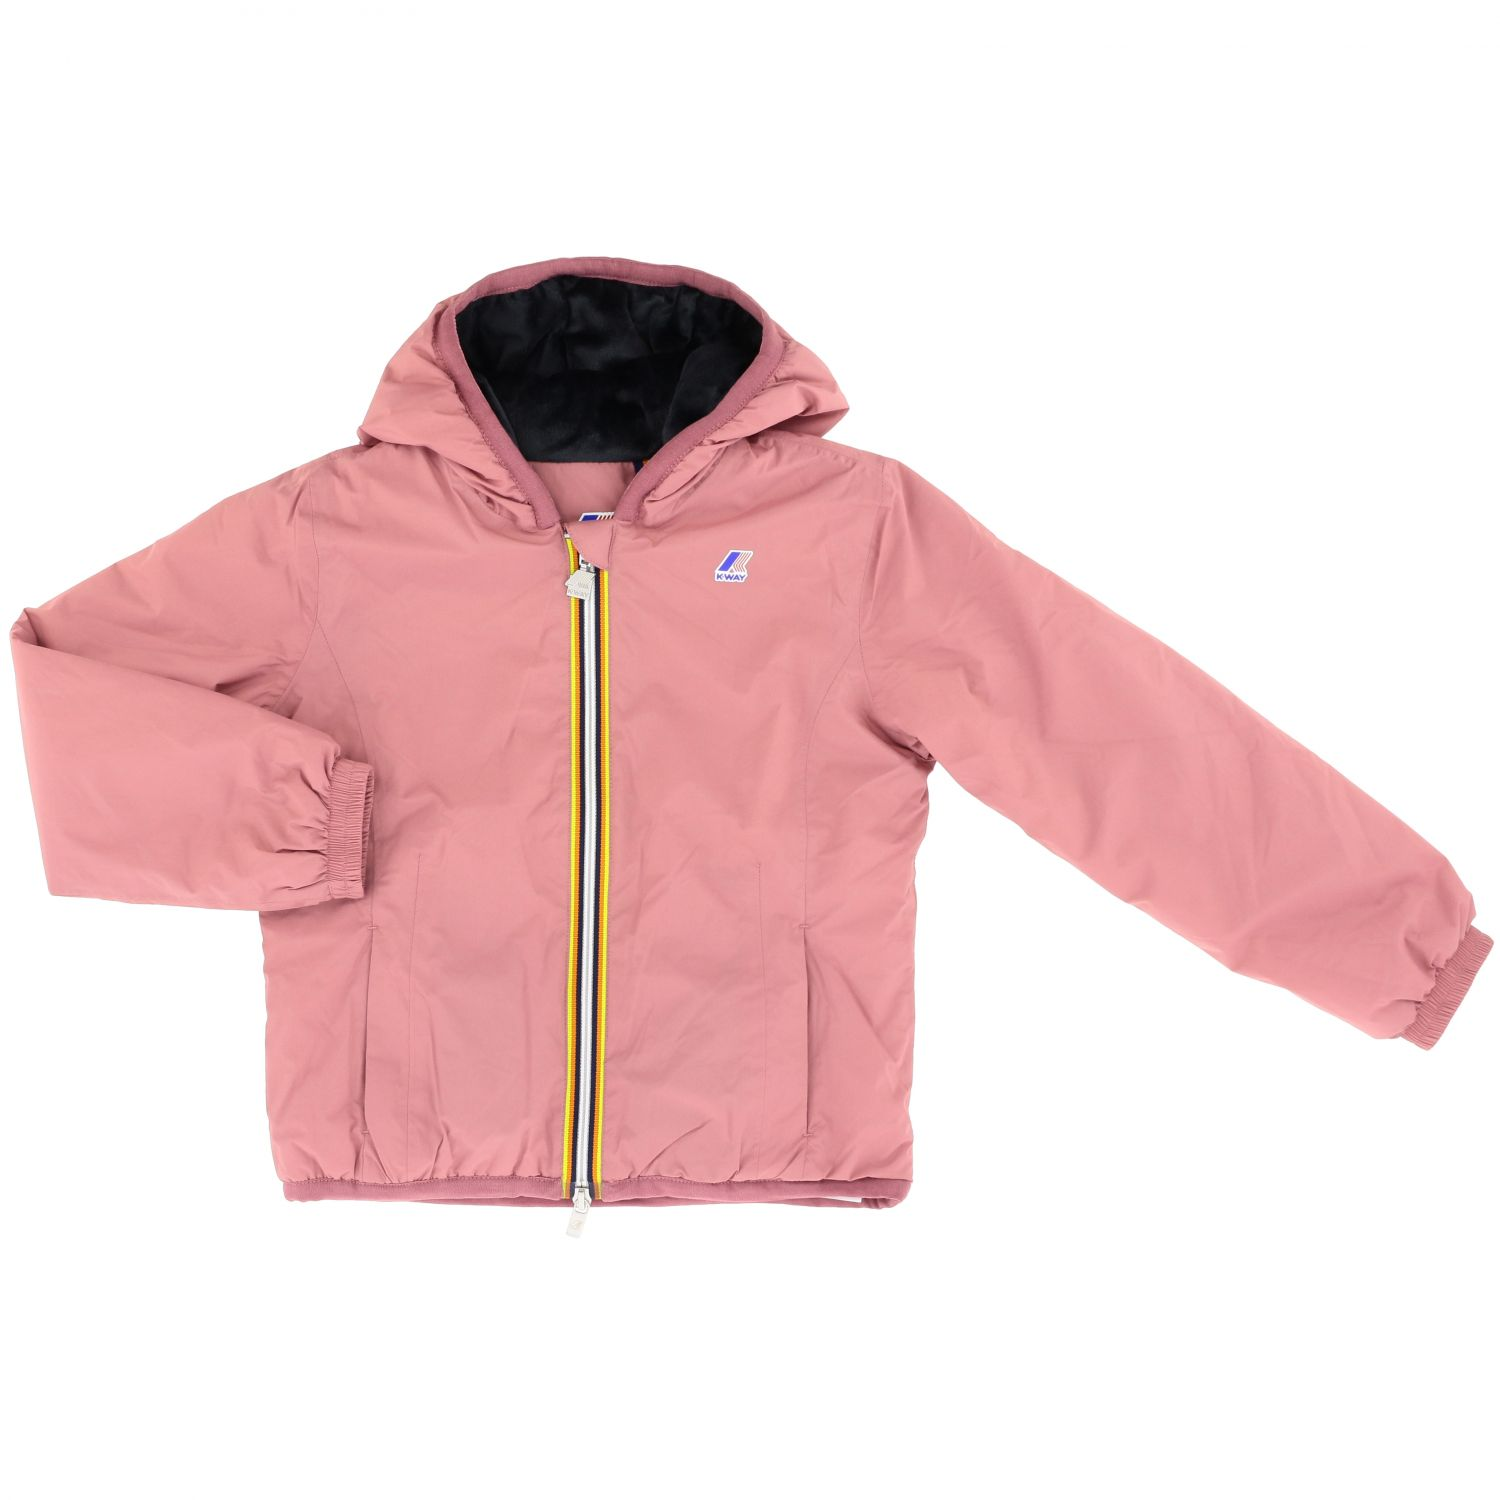 Jacket K-Way: Jacket kids K-way pink 1